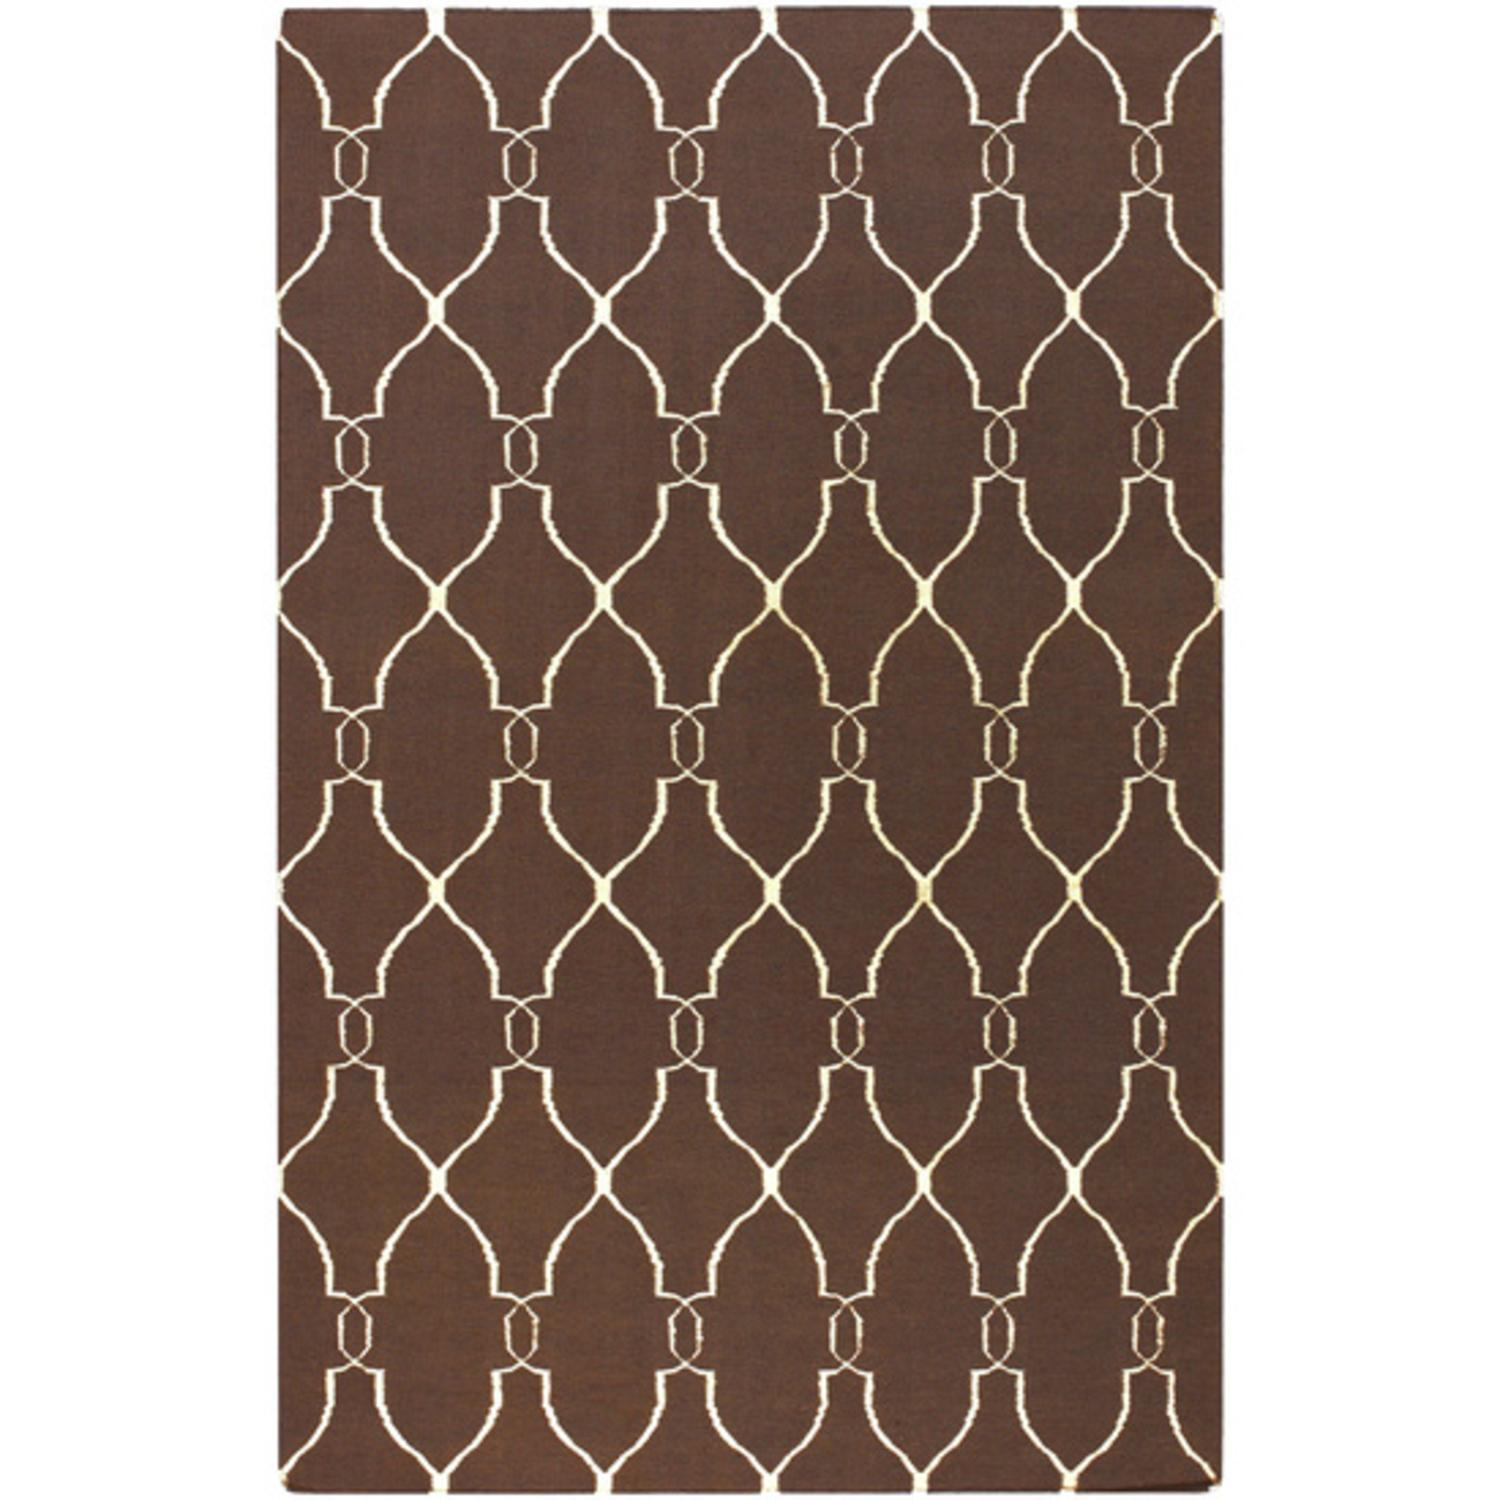 5' x 8' Forest Life Ivory and Brown Hand Woven Wool Area Throw Rug